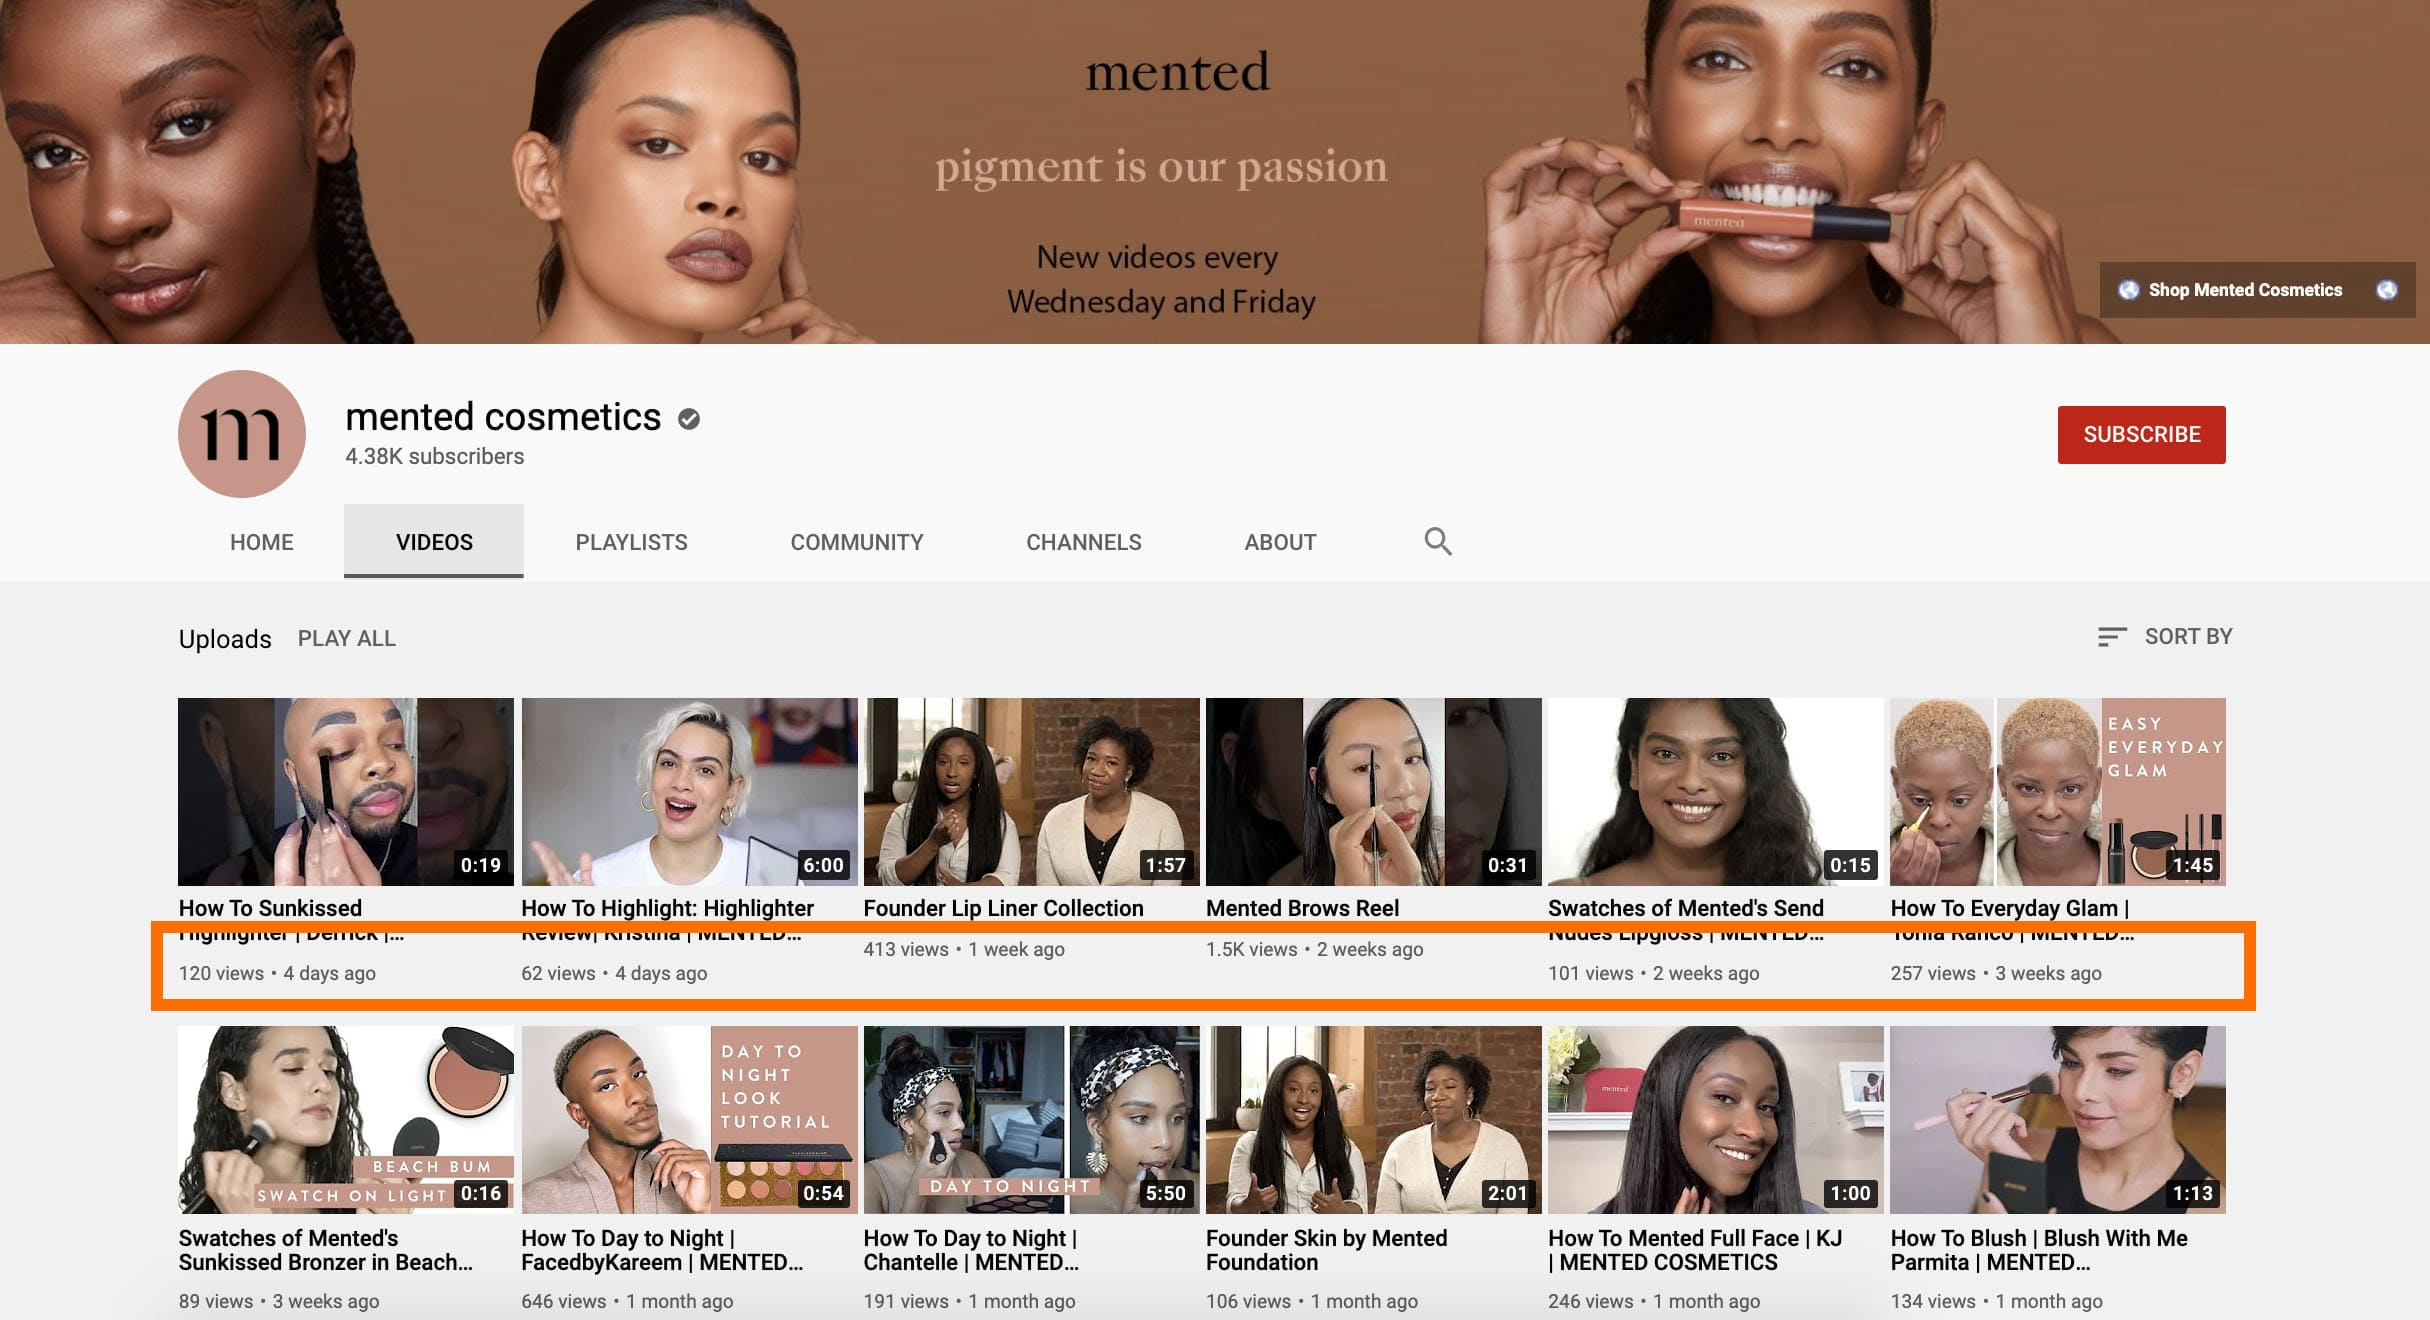 mented cosmetics on youtube with lower publishing volume